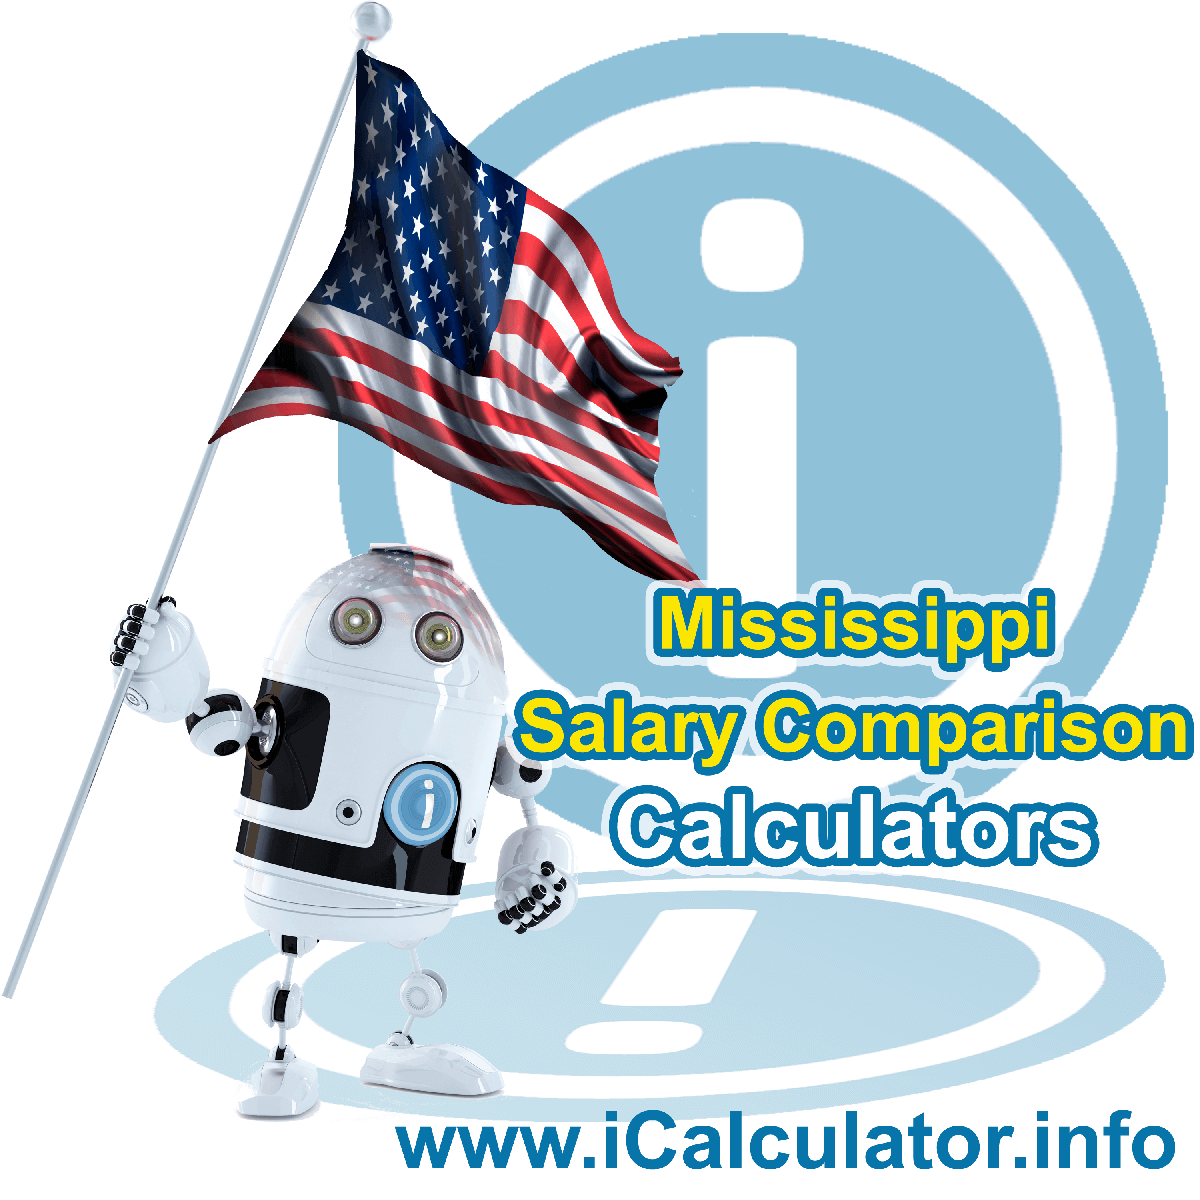 Mississippi Salary Comparison Calculator 2019   iCalculator   The Mississippi Salary Comparison Calculator allows you to quickly calculate and compare upto 6 salaries in Mississippi or between other states for the 2019 tax year and historical tax years. Its an excellent tool for jobseekers, pay raise comparison and comparison of salaries between different US States